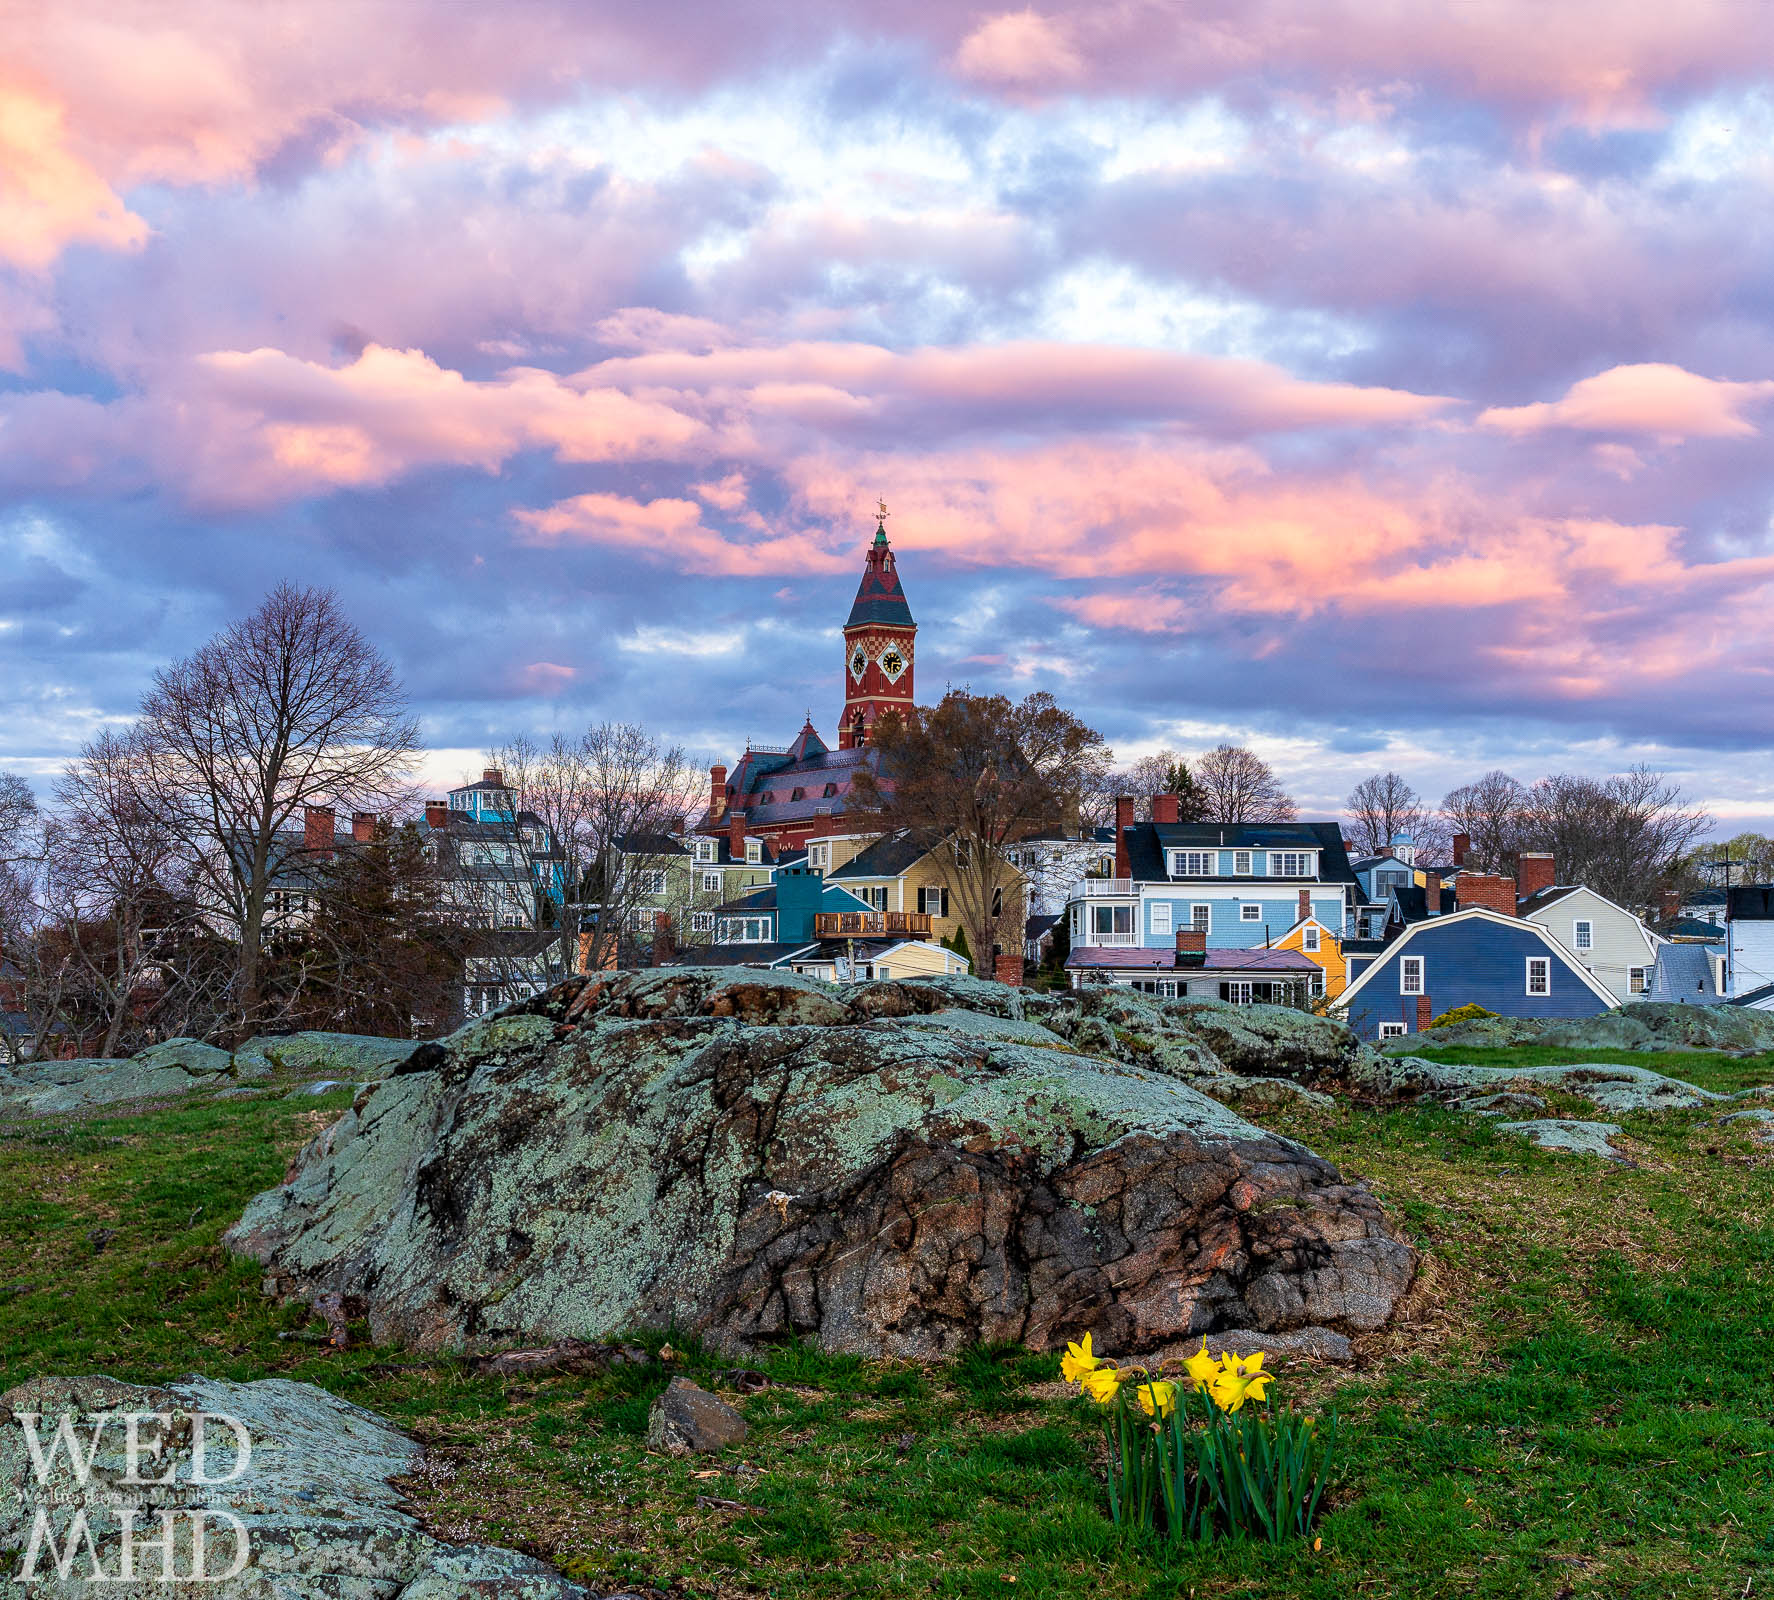 Daffodils signal the onset of spring in Crocker Park with a backdrop of Abbot Hall and clustered houses under a beautiful sunrise sky